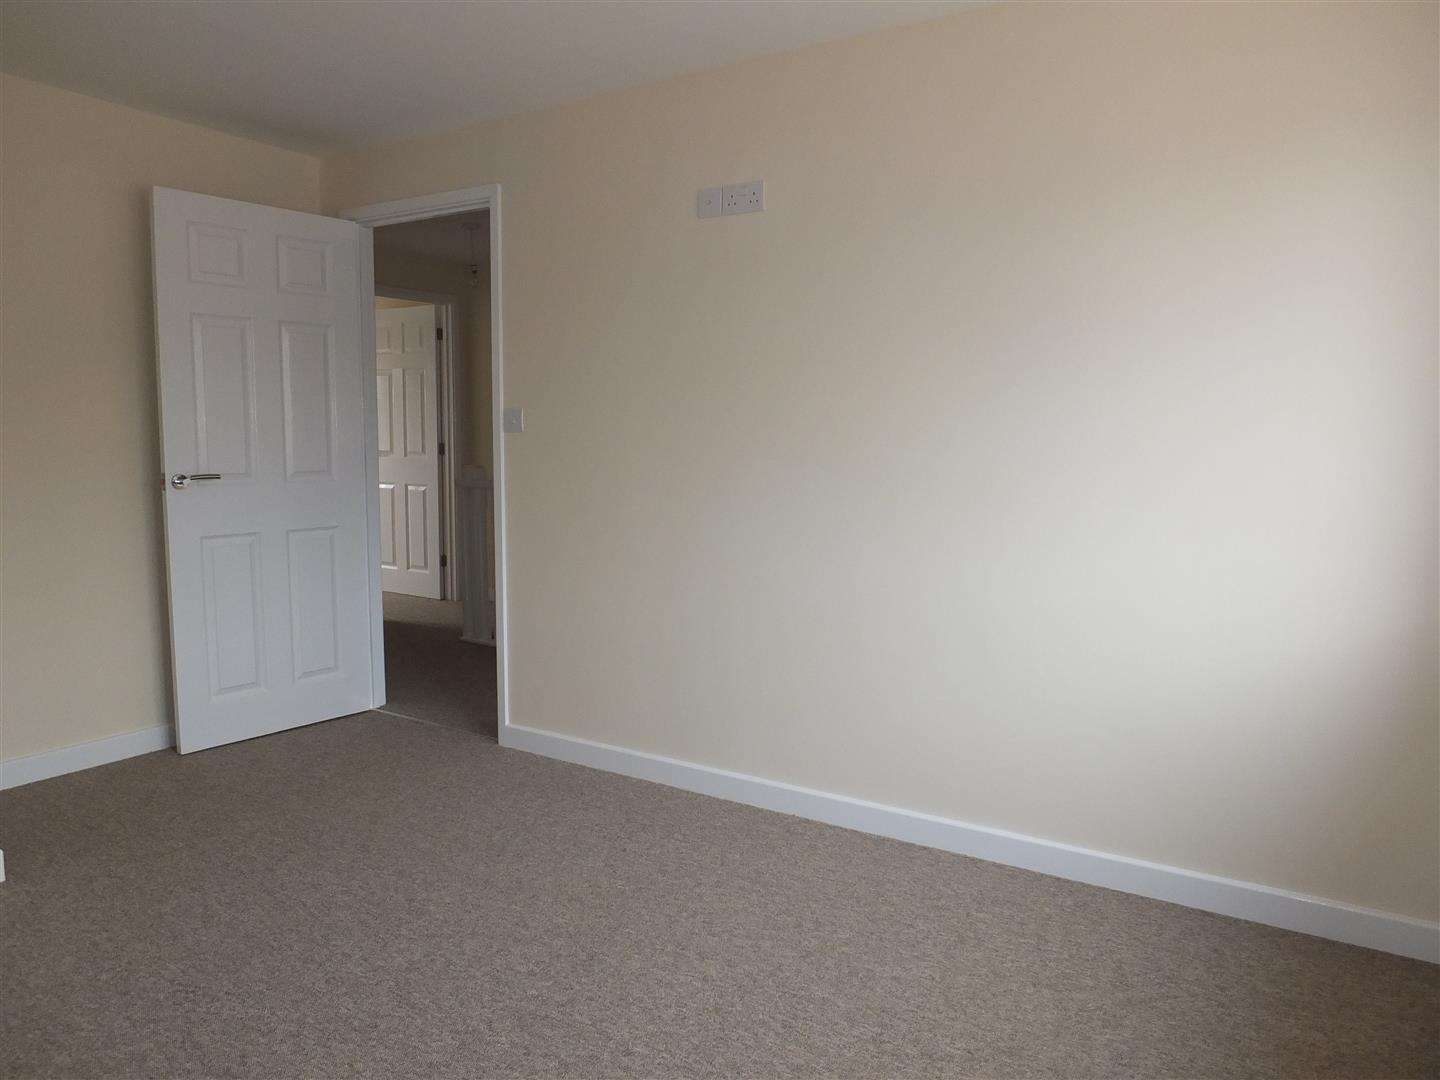 3 bed house to rent in Long Sutton, PE12 9LE 5